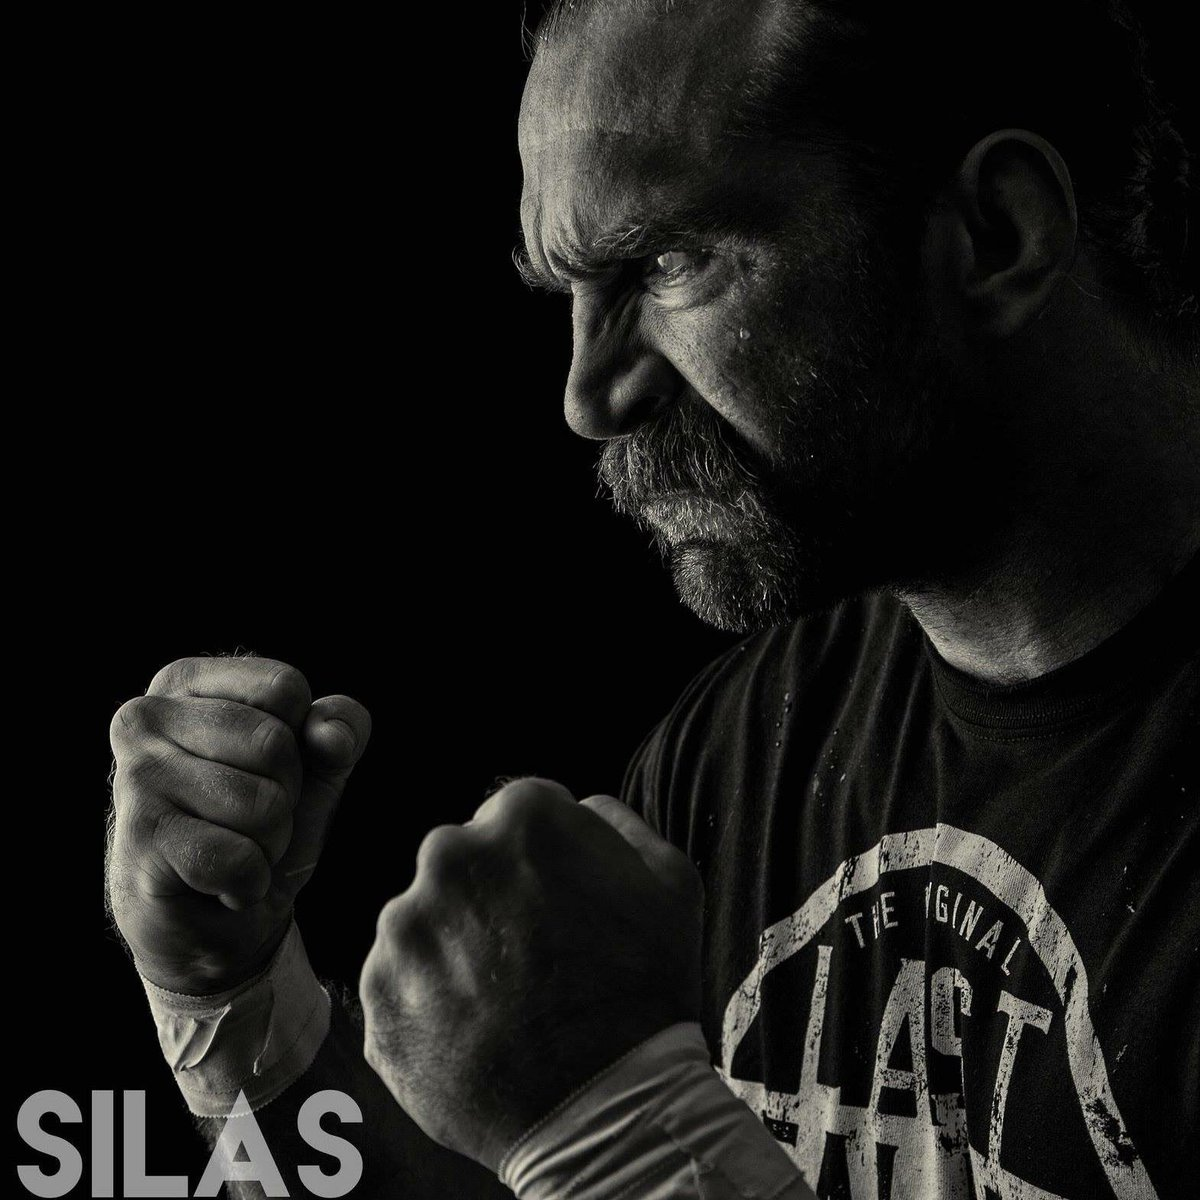 The ICW family would like to wish @lastrealmanROH good luck tonight in his big match on ppv for @ringofhonor for the TV Title. We are proud of The Last Real Man In Pro Wrestling. #lastrealman #roh #ppv #icw #silas #young #tvtitle #Champion<br>http://pic.twitter.com/fiS5StxByu